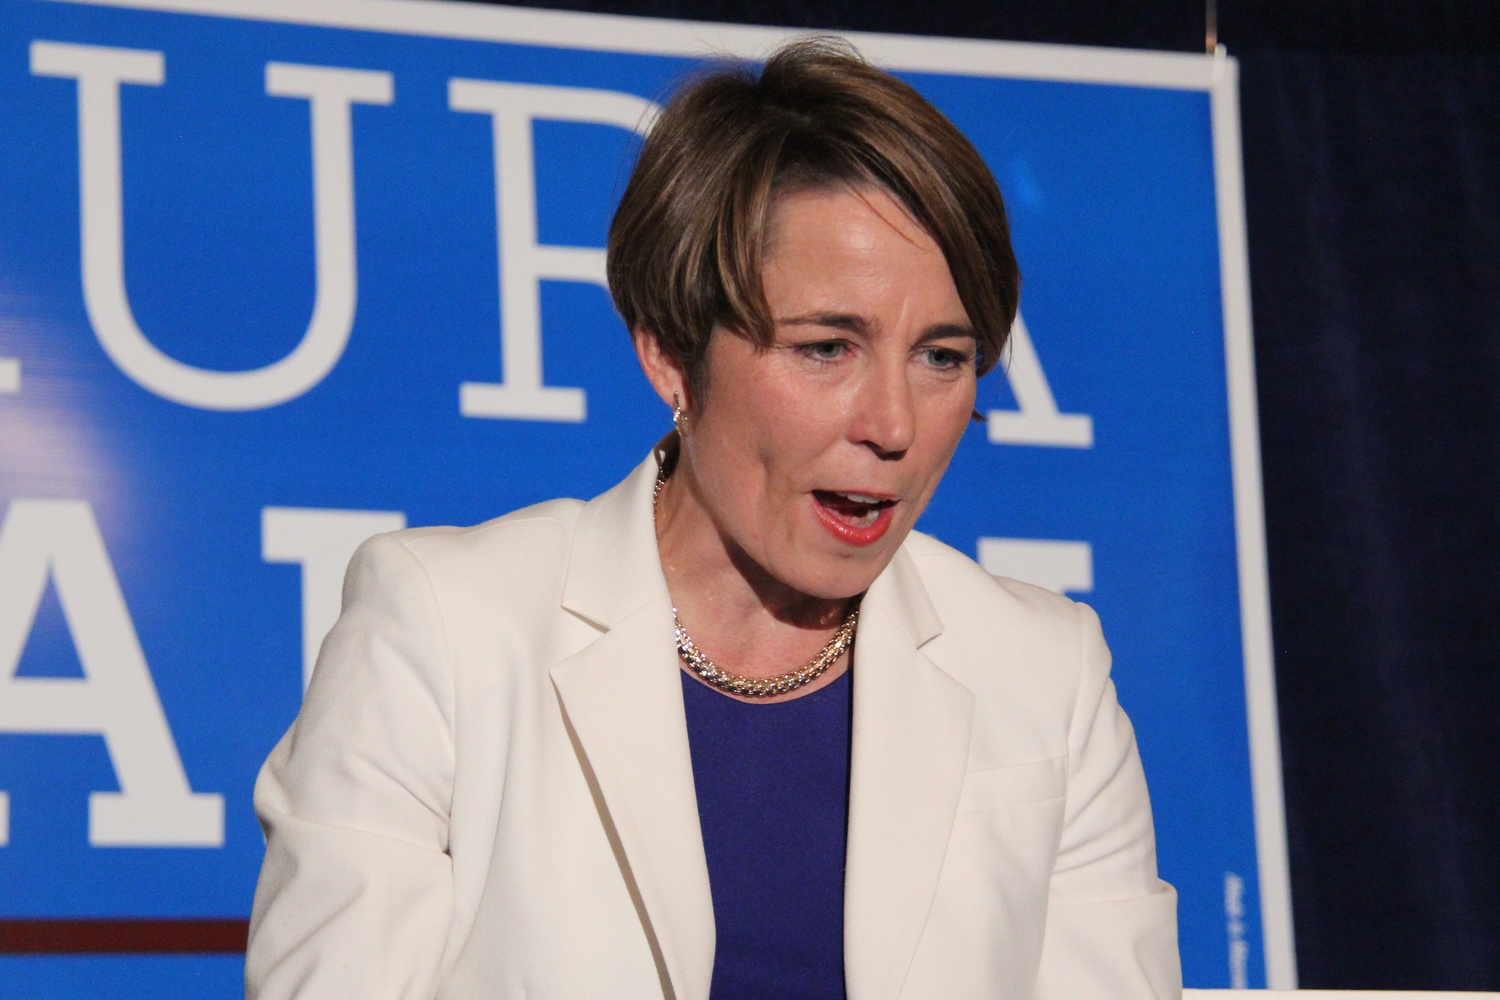 Maura Healey '92, the newly elected Attorney General, celebrates her election at the Oval Room in the Fairmont Copley Plaza on Wednedsay night.